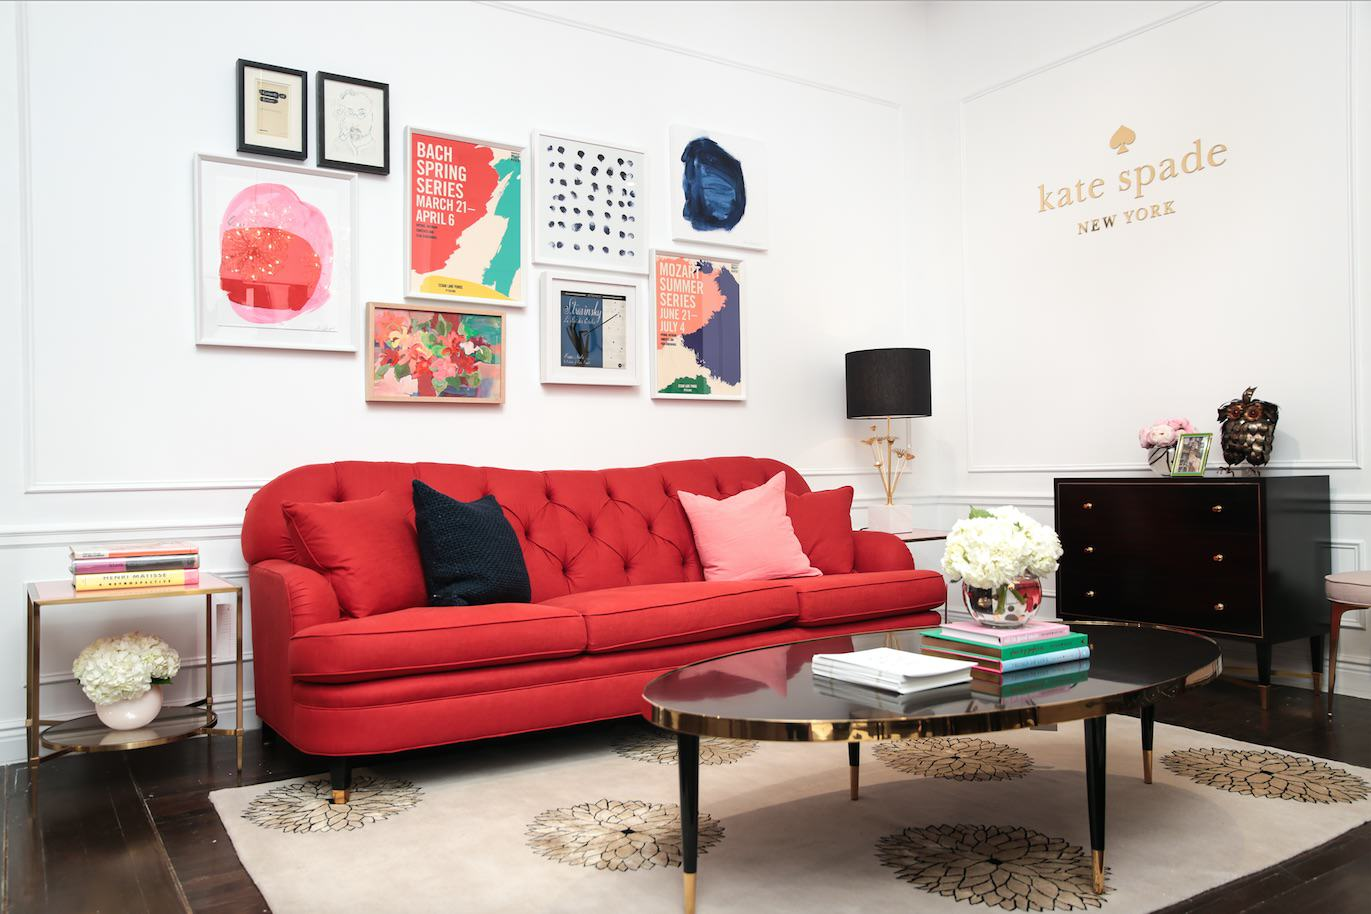 Kate Spade Home Collection Launches at ABC Carpet & Home